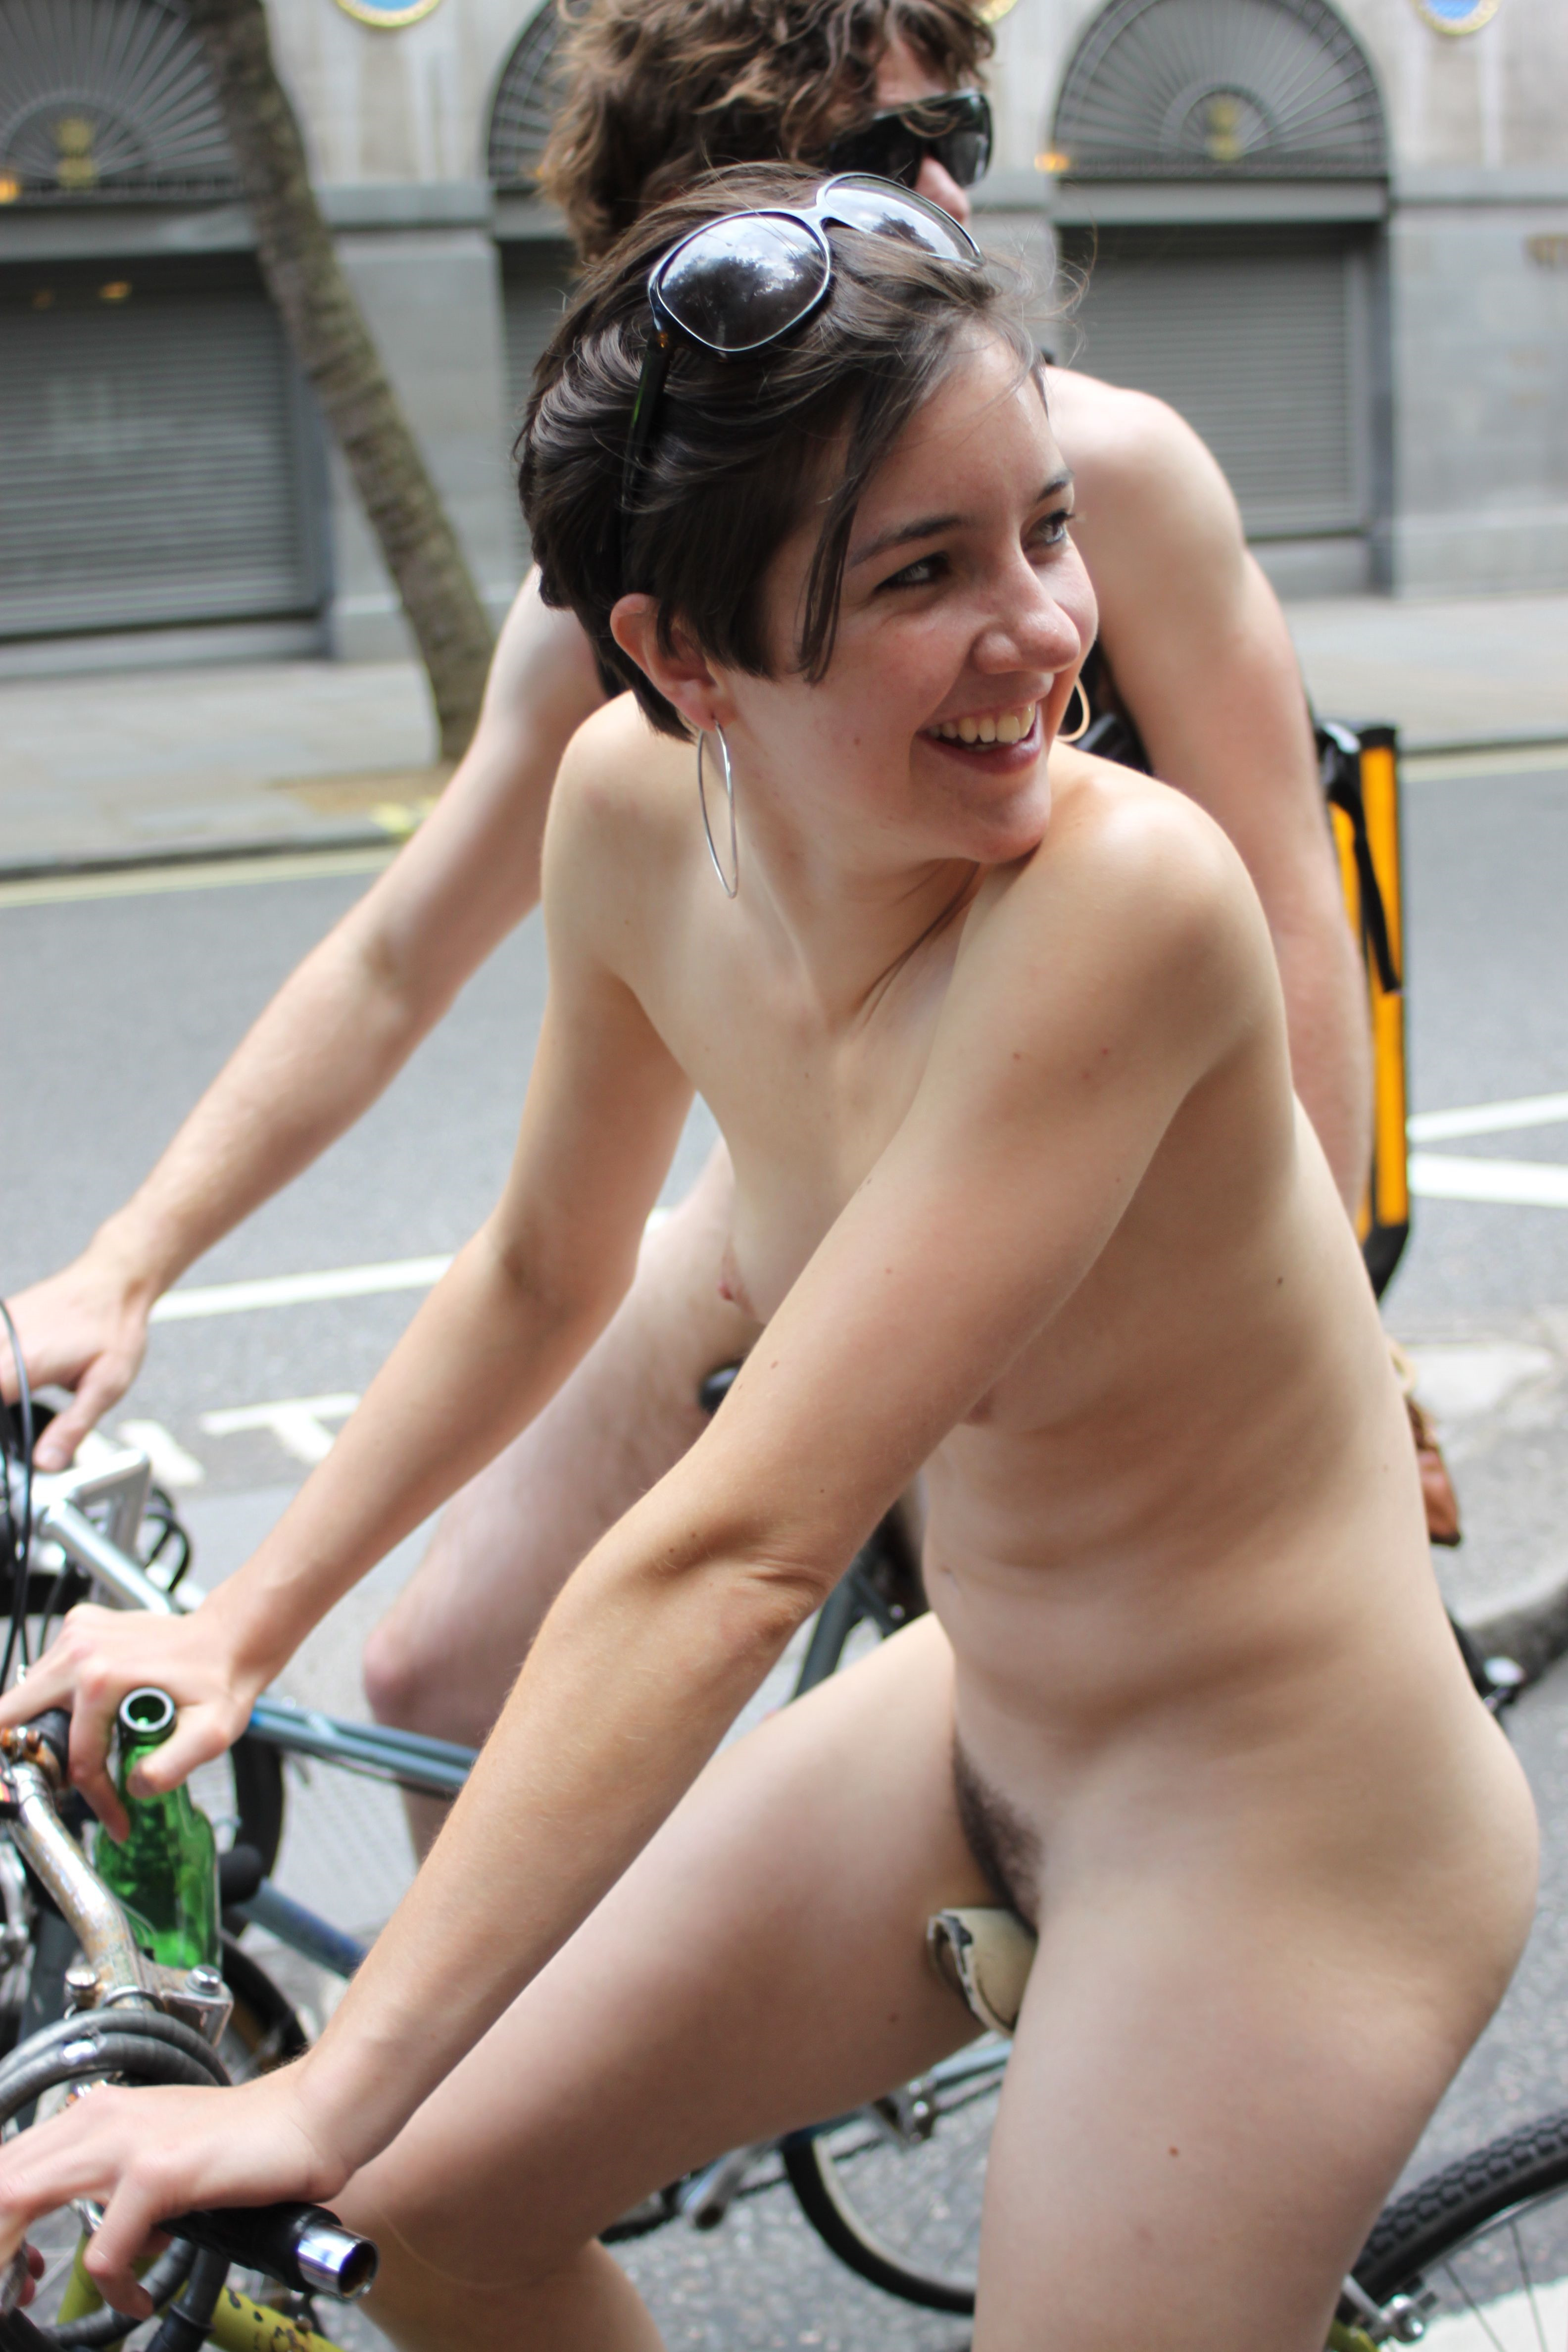 naked-chicks-riding-bicycles